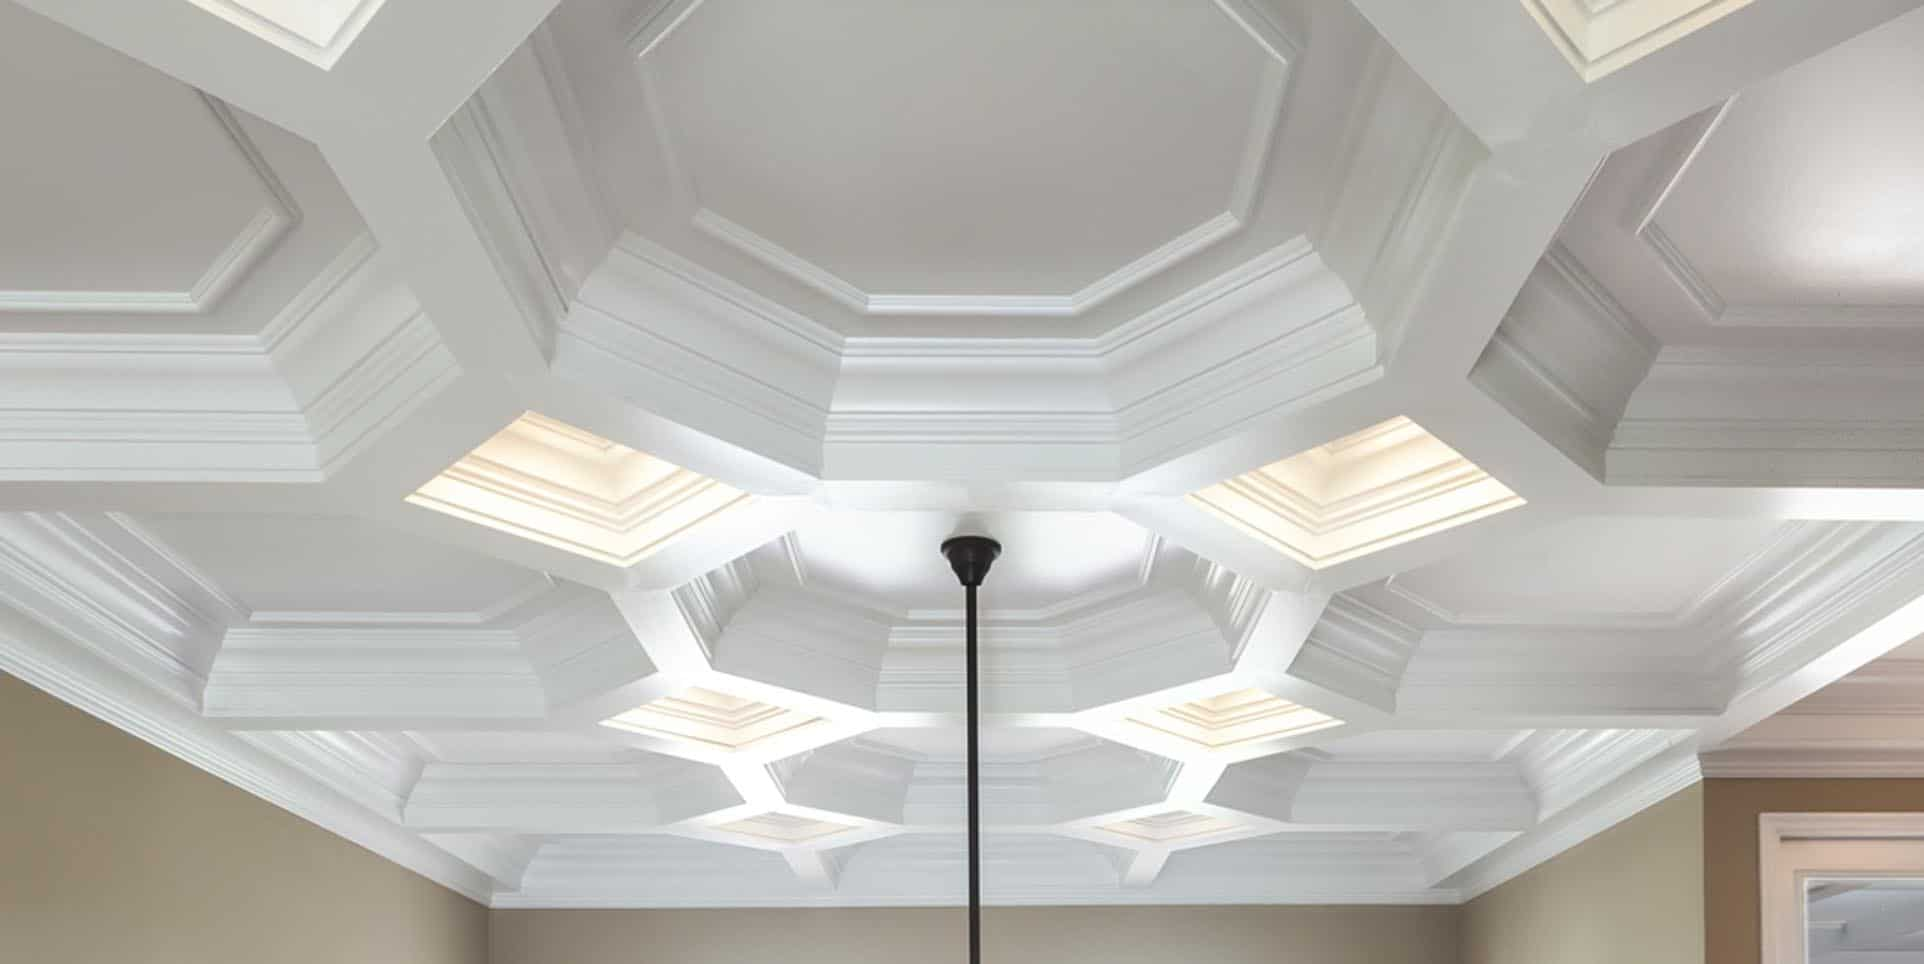 coffered ceiling coffered ceilings ceiling treatment ceiling design ceiling panel faux - Ceiling Molding Design Ideas